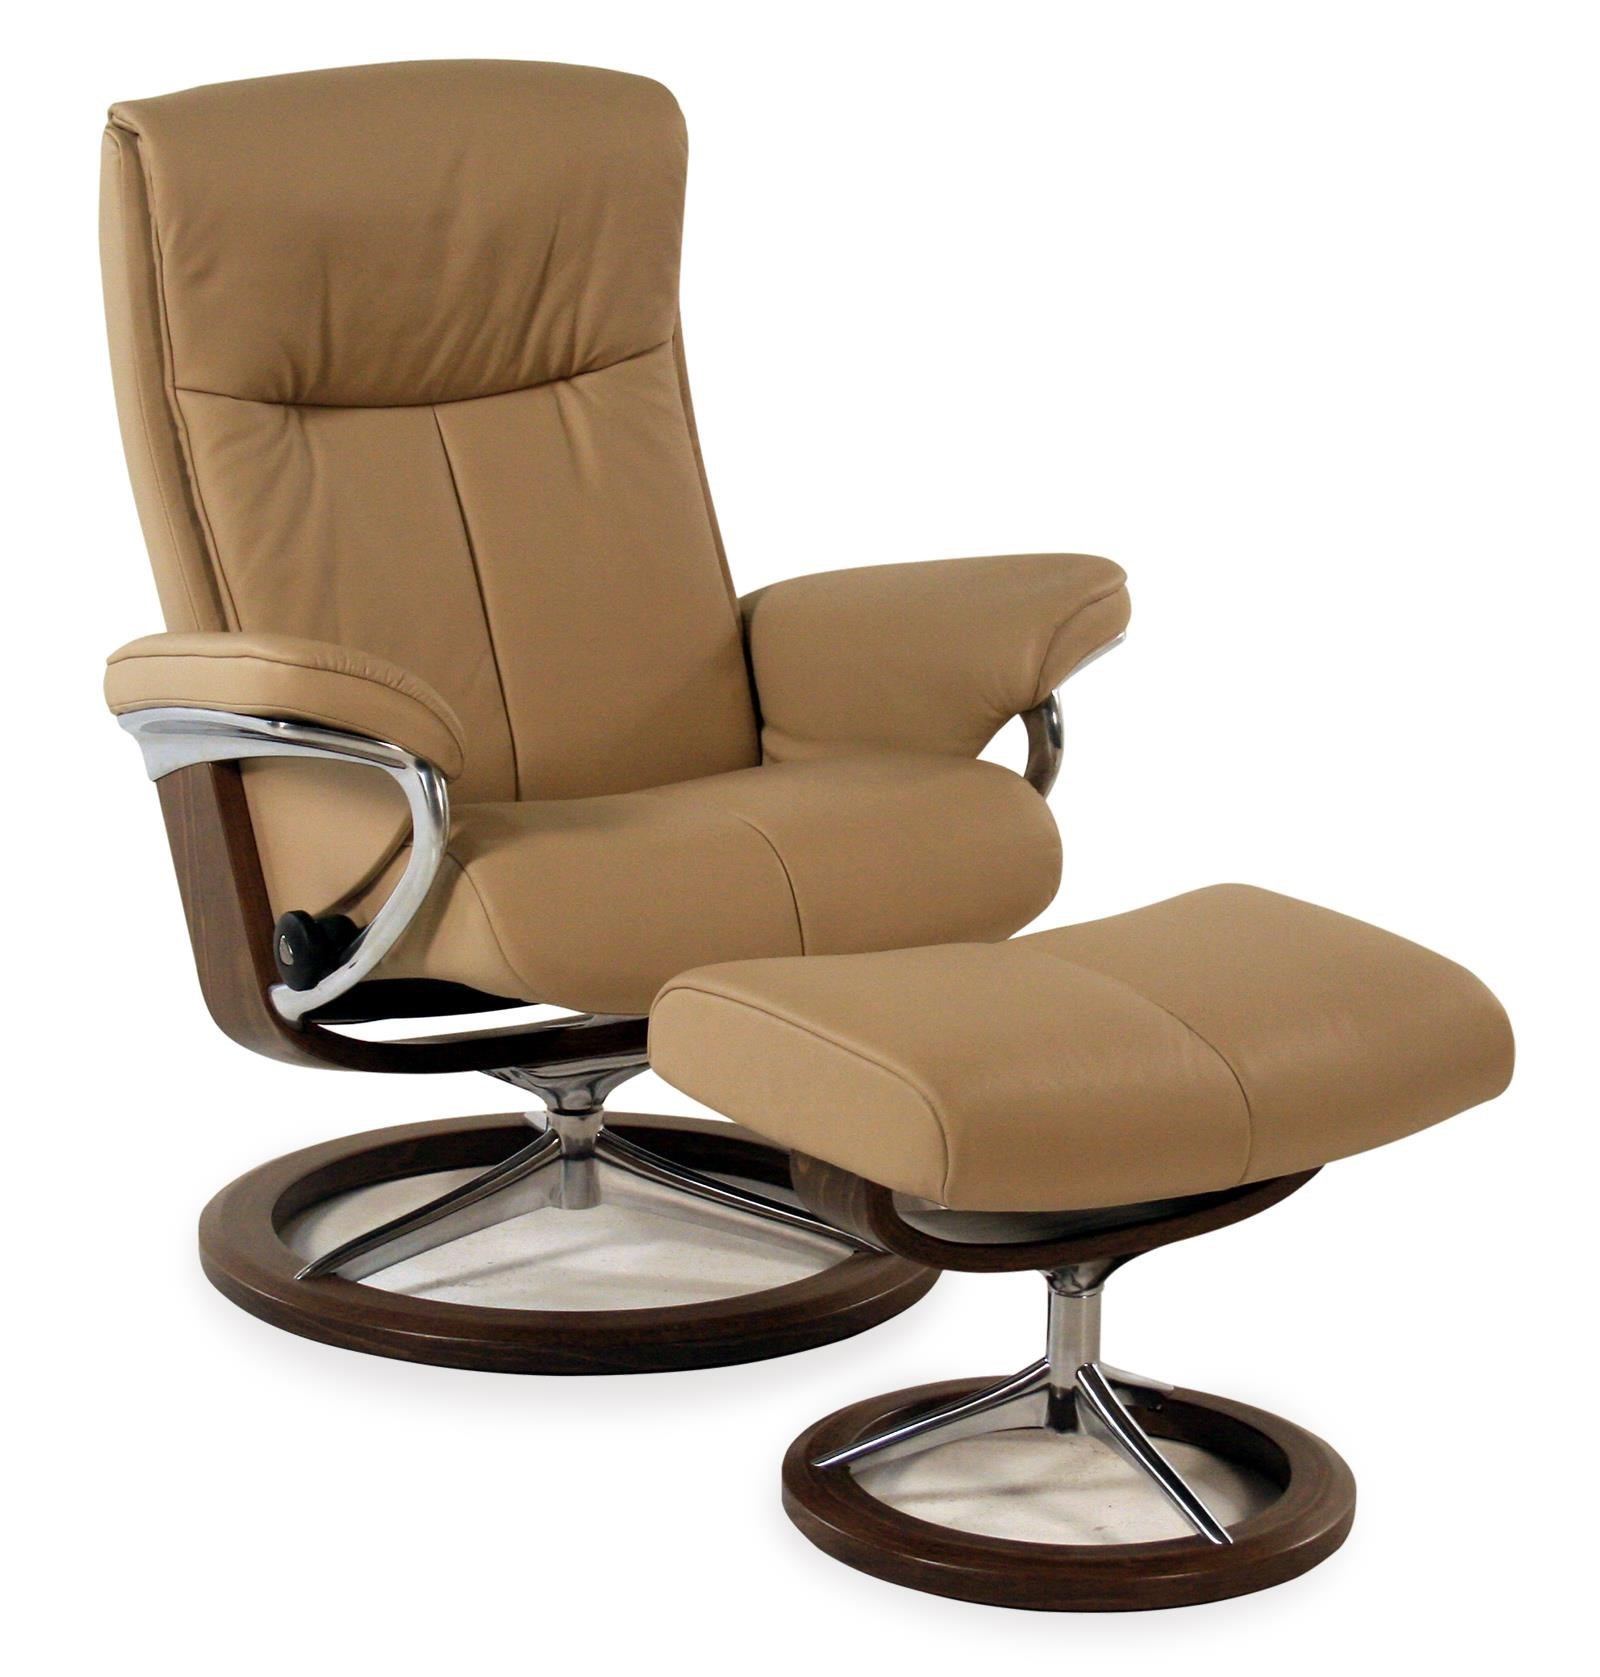 Stressless Paloma Peace Medium Signature Reclining Chair Ottoman Paloma Beige By Stressless By Ekornes At Rotmans